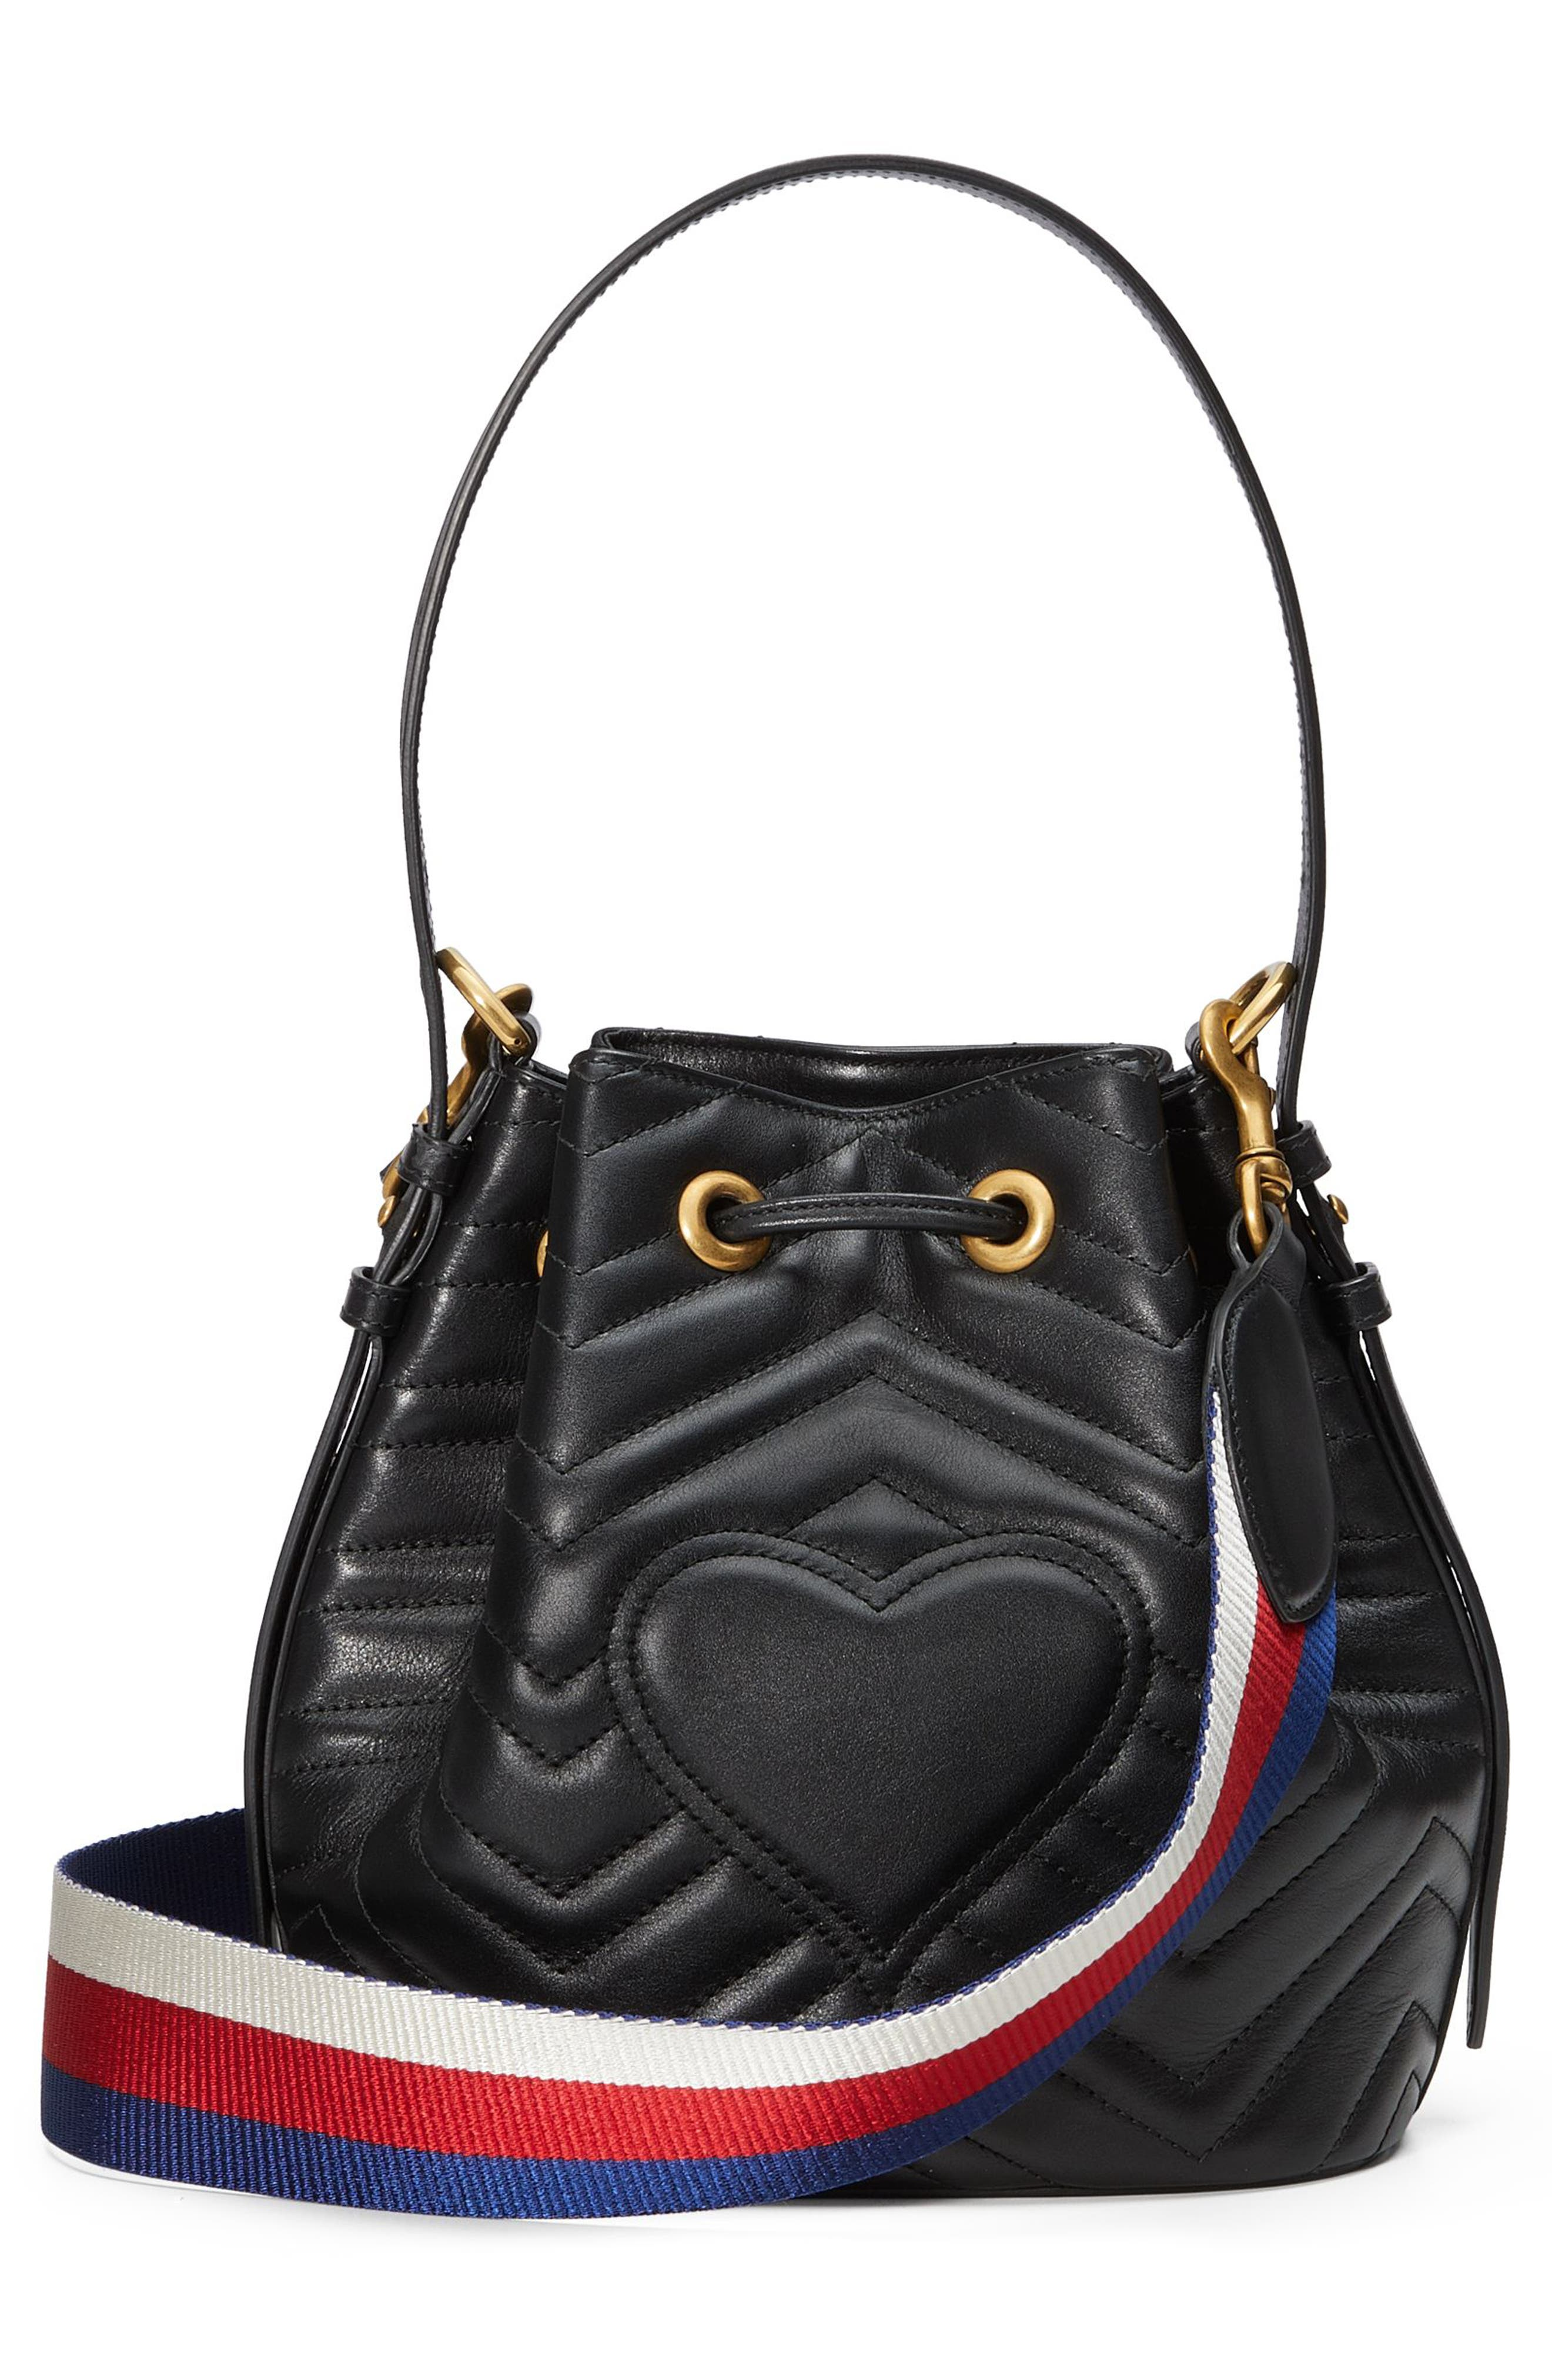 GG Marmont 2.0 Matelassé Leather Bucket Bag,                             Alternate thumbnail 2, color,                             977